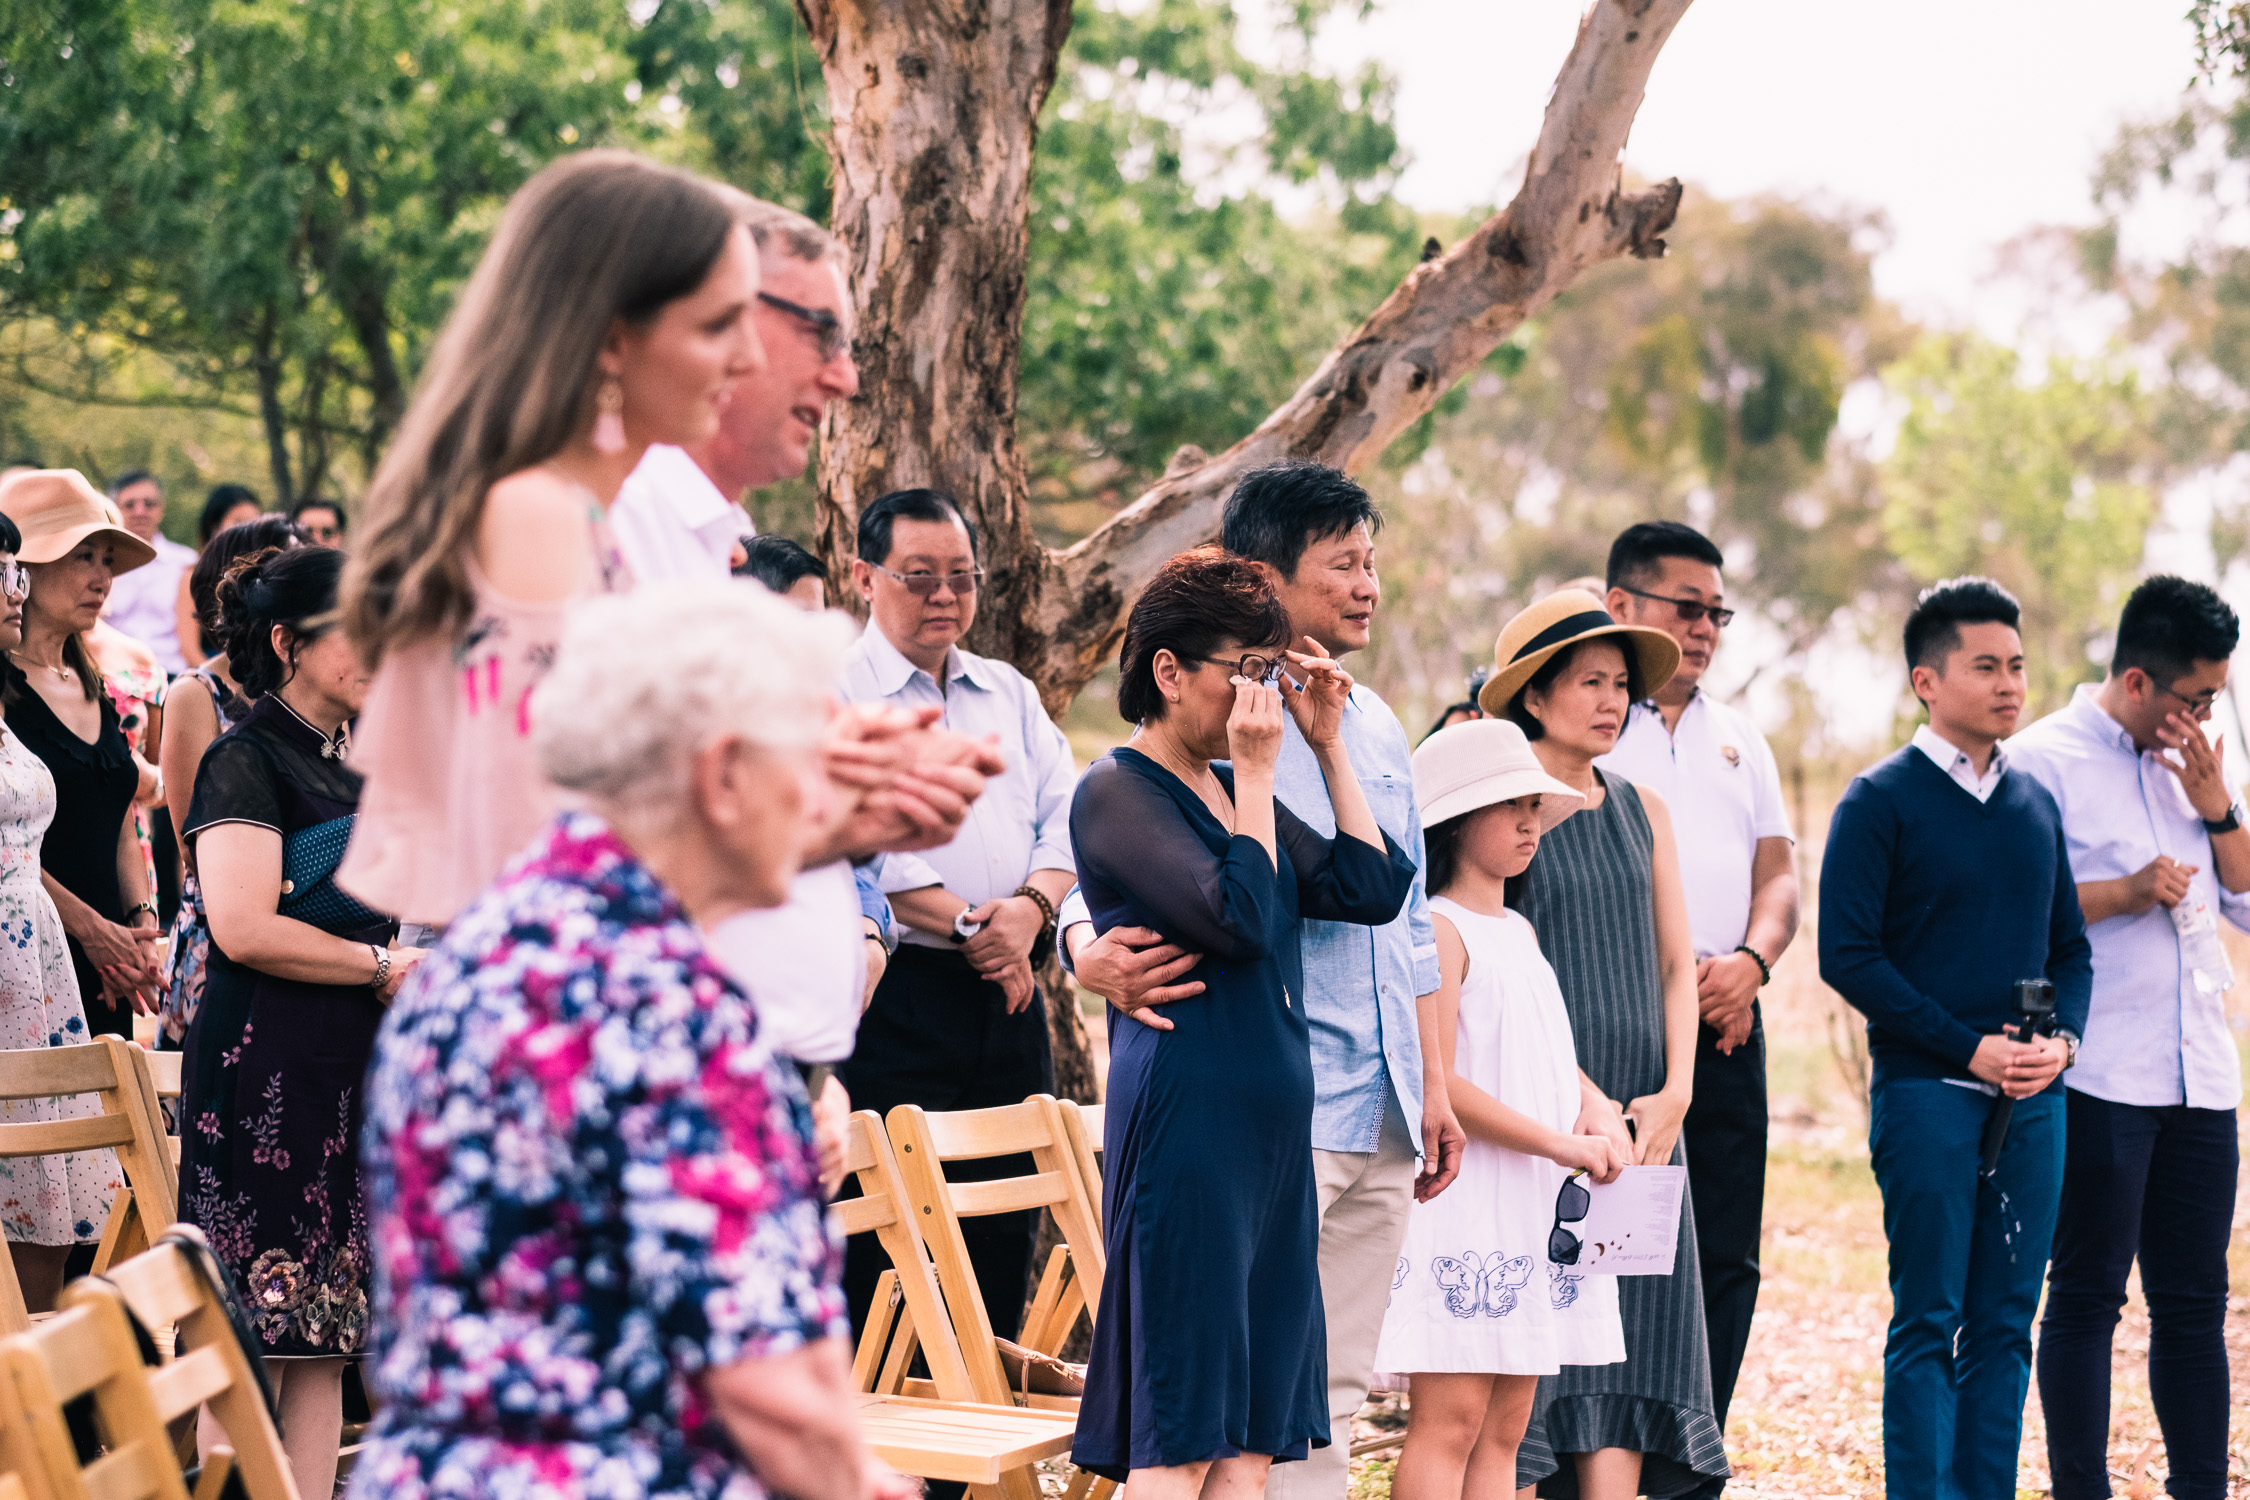 Melbourne Sunnystones Camp Wedding - Parents crying during ceremony